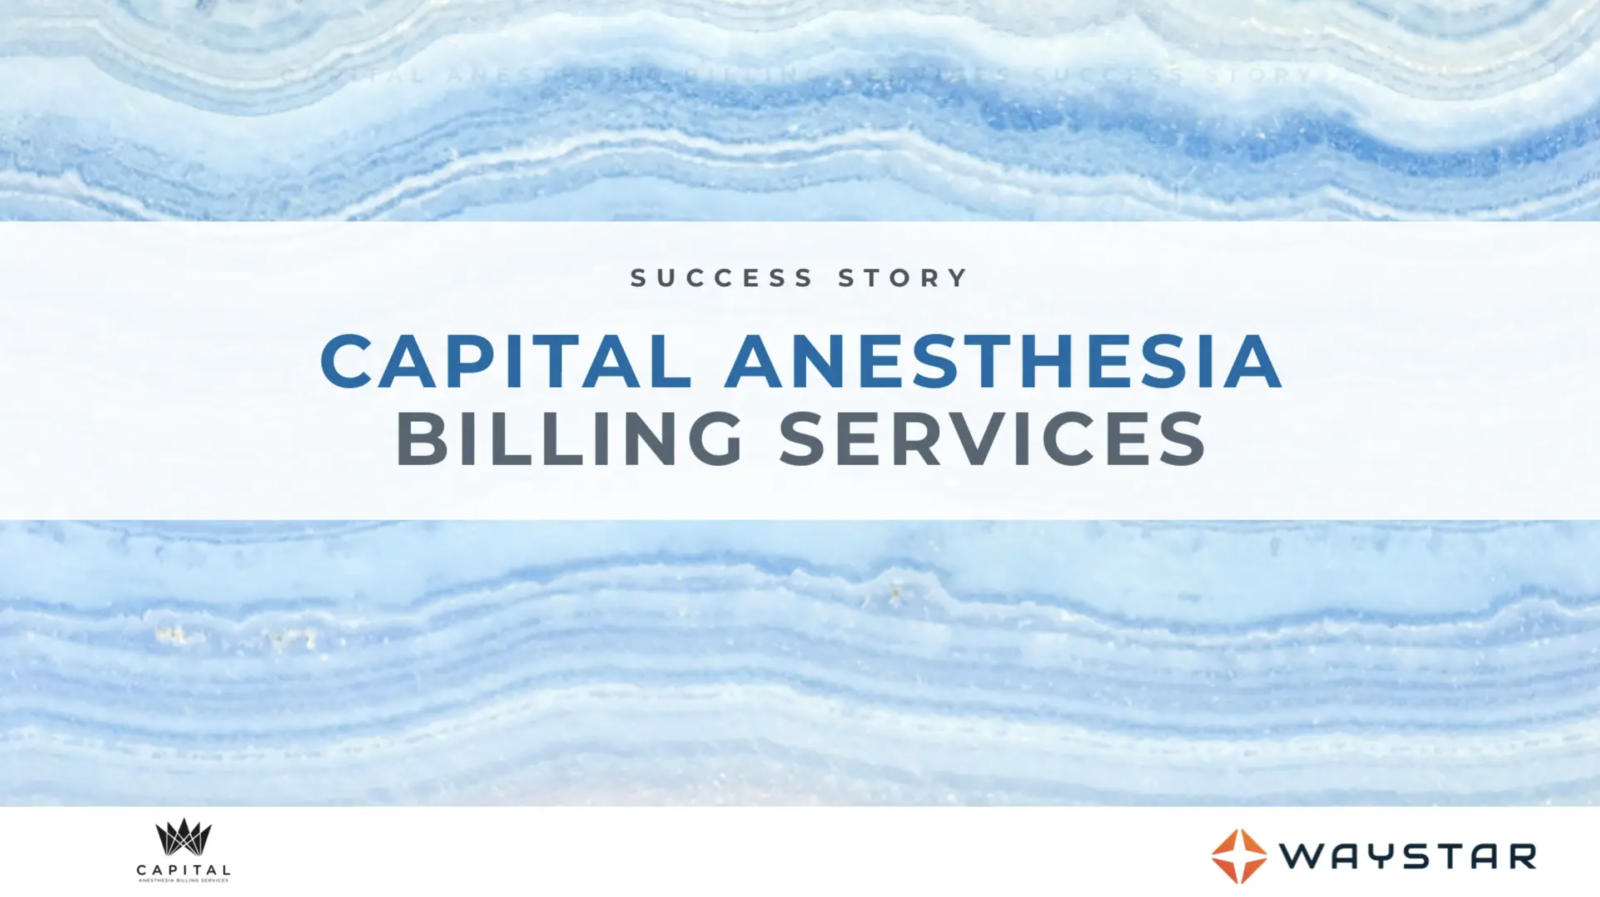 Success story: Capital Anesthesia